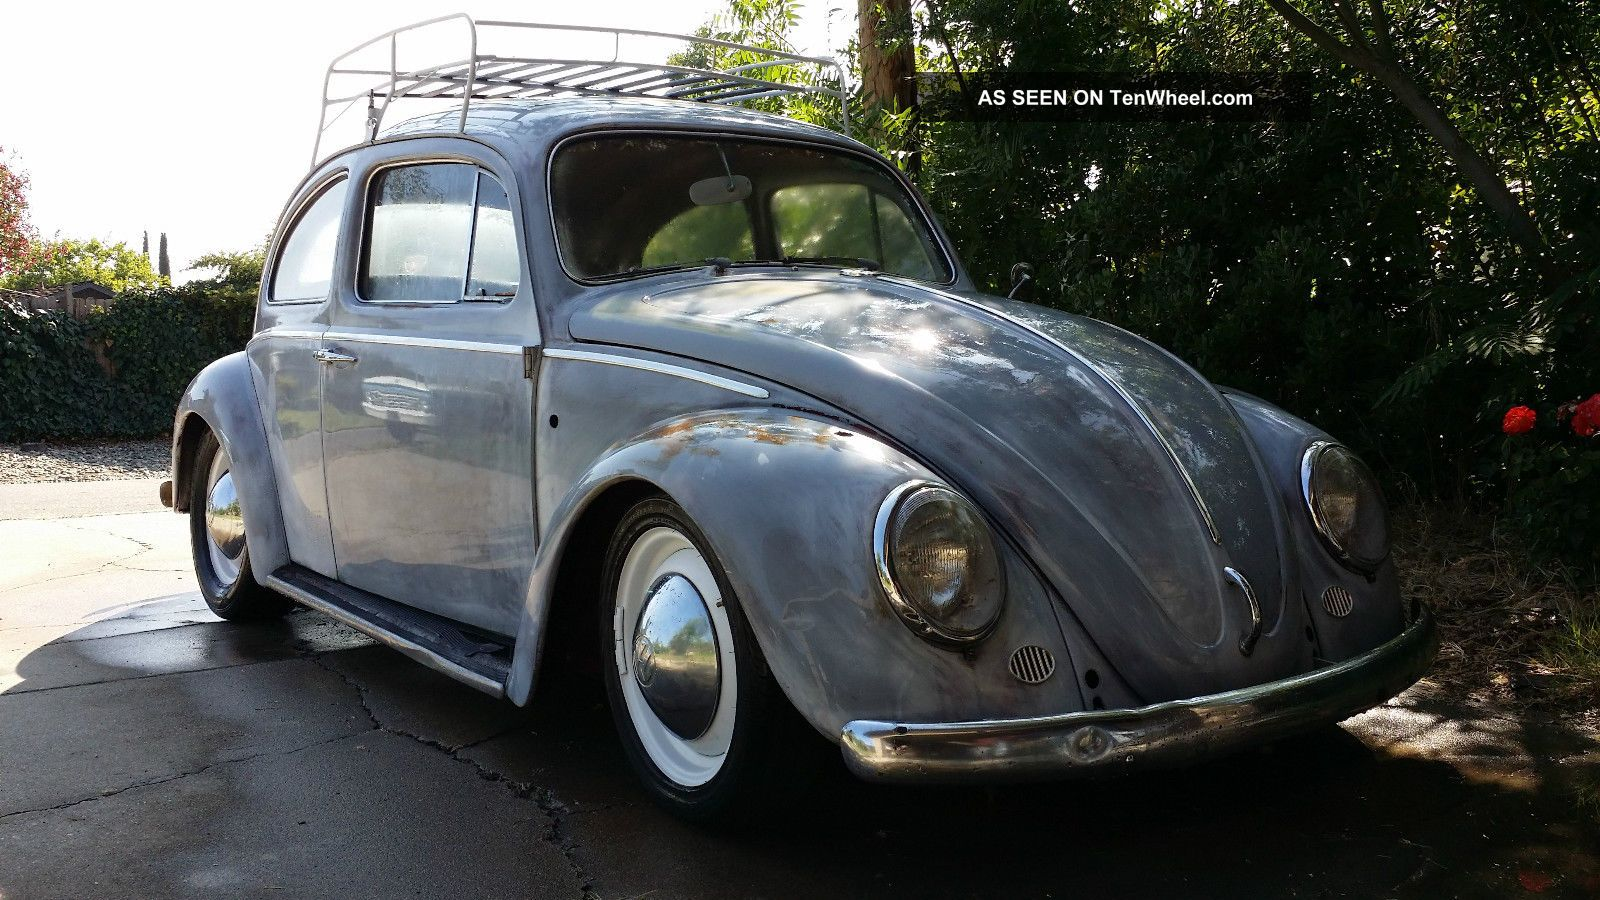 1964 Vw Bug / Beetle Beetle - Classic photo